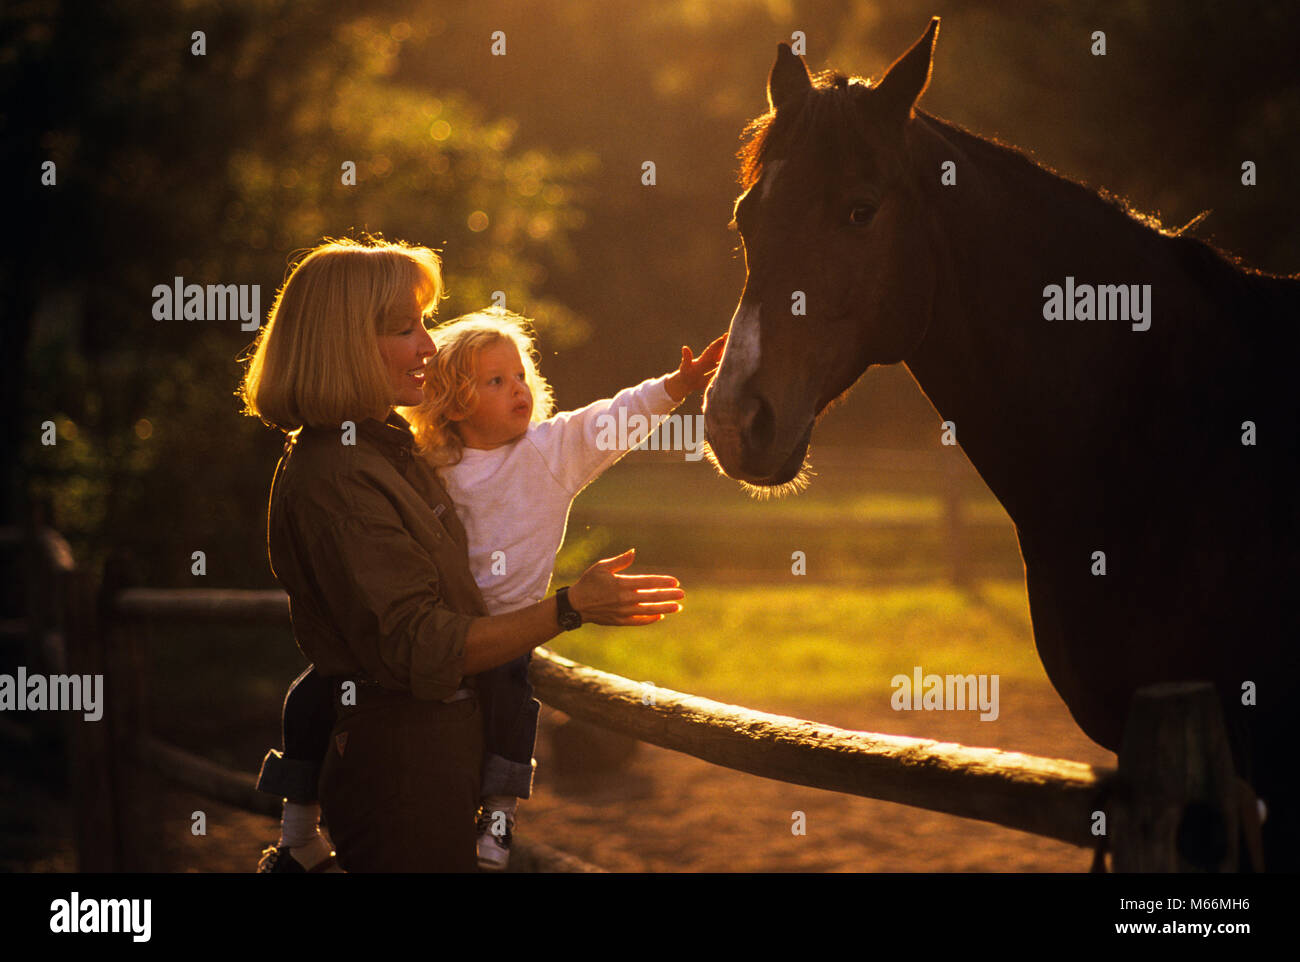 1980s BACKLIT SILHOUETTED BLOND WOMAN MOTHER HOLDING CHILD DAUGHTER REACHING OUT TO TOUCH HORSE - kh9658 LAF002 - Stock Image